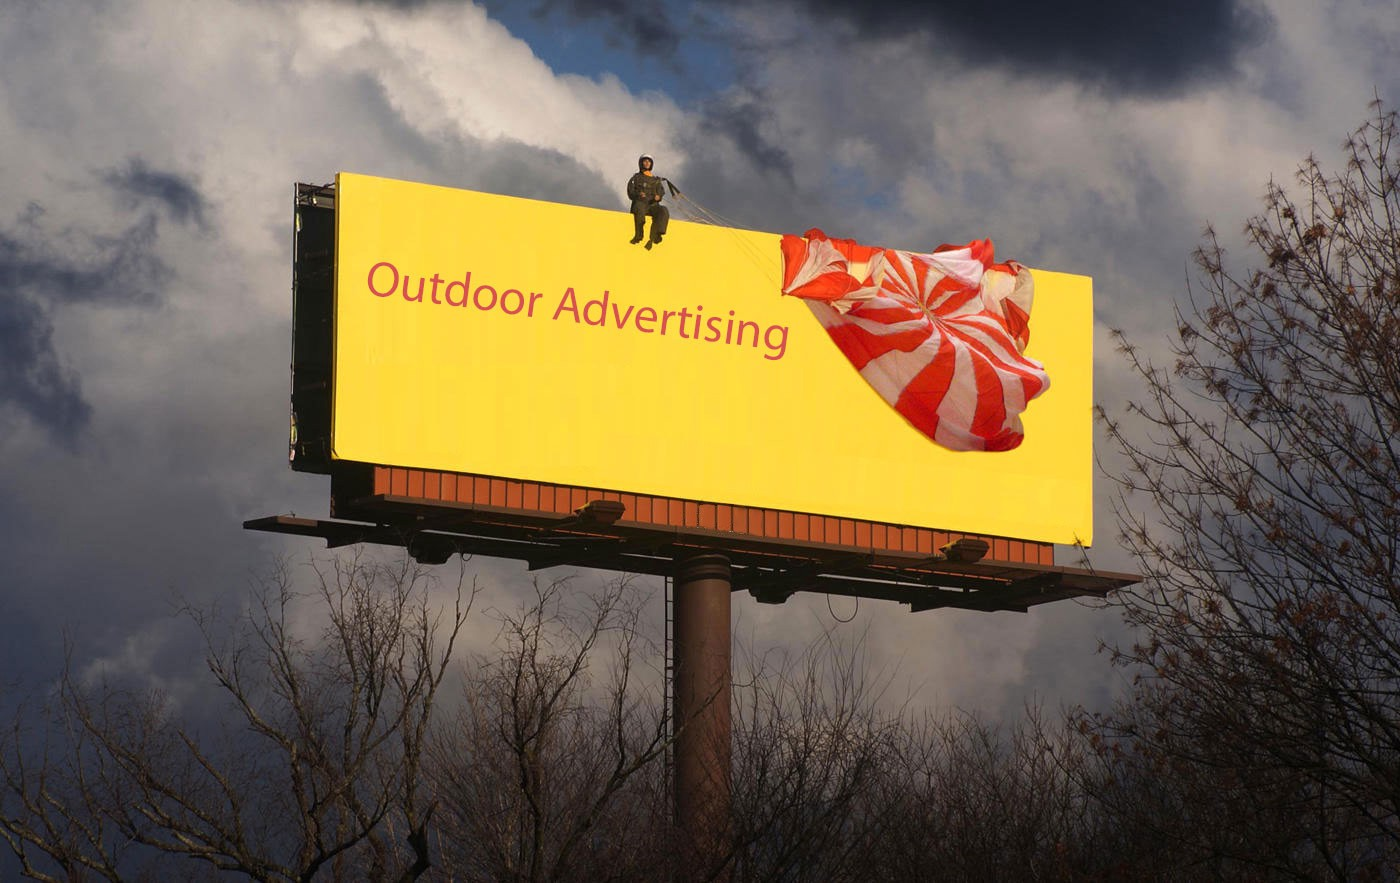 ooh advertisements in india Posts about ooh advertising in india written by advertisinginindia.